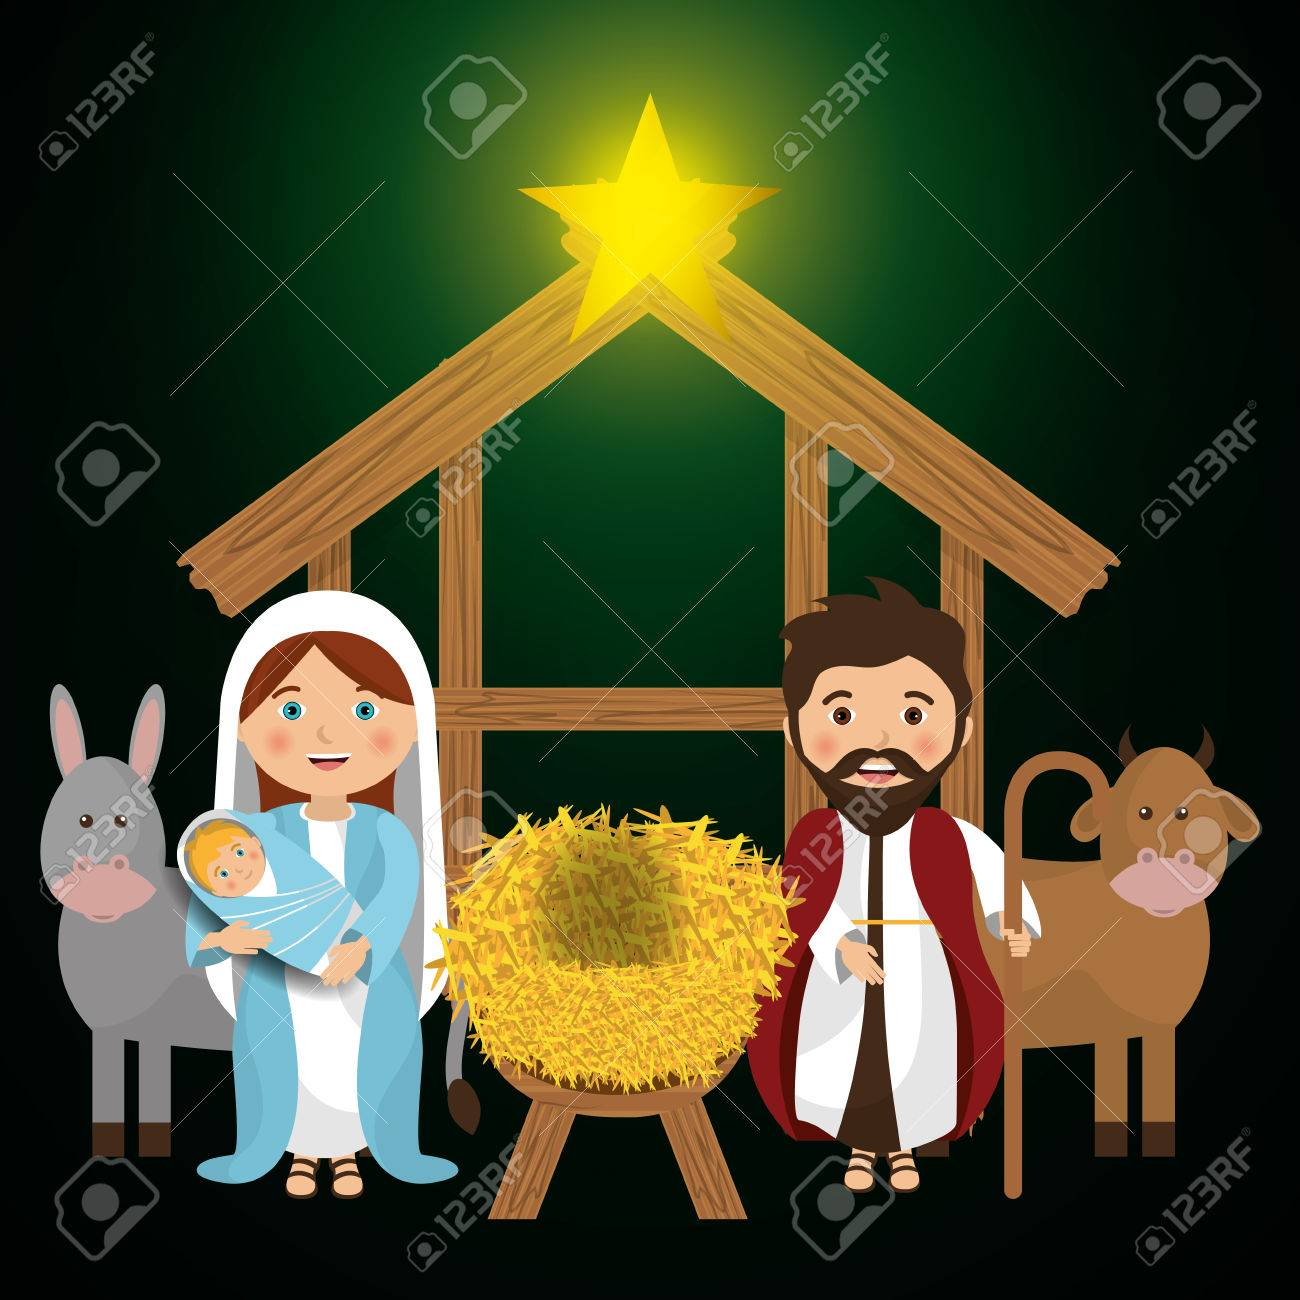 Merry christmas cartoons, vector illustration graphic eps10 - 46851023